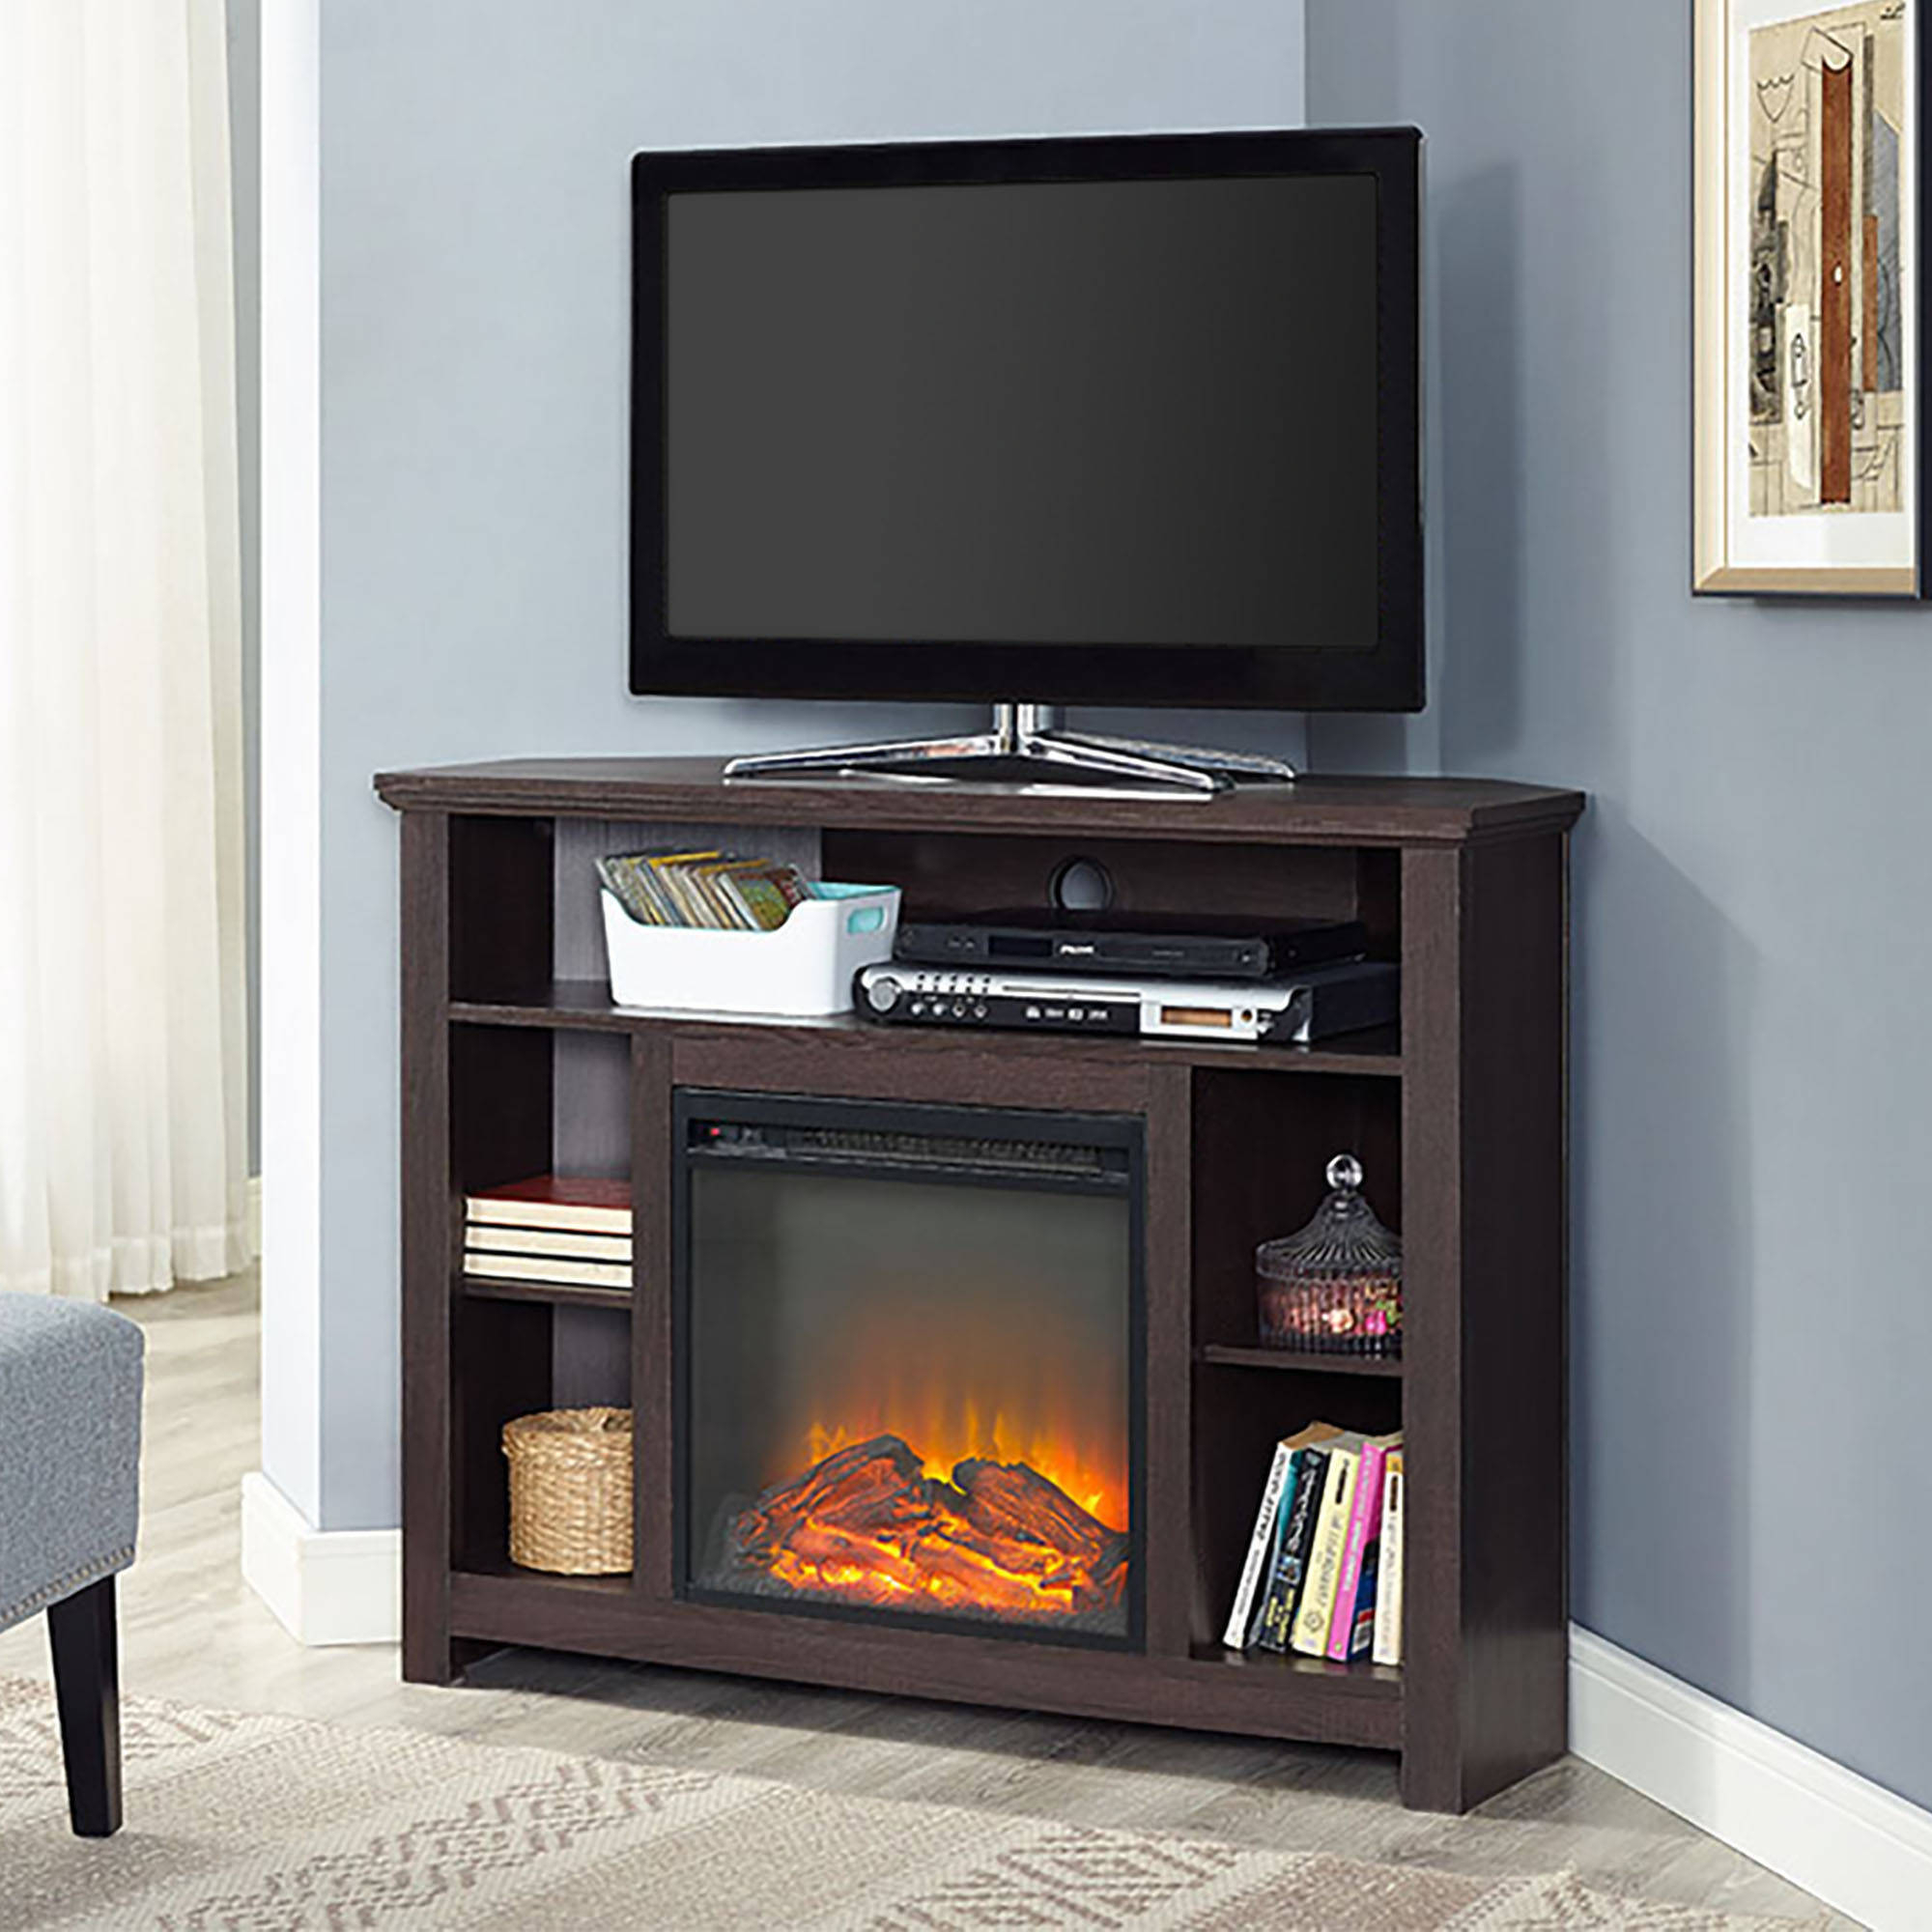 Latest Tv Stands & Entertainment Centers – Walmart Within Tv Stands With Storage Baskets (Gallery 15 of 20)